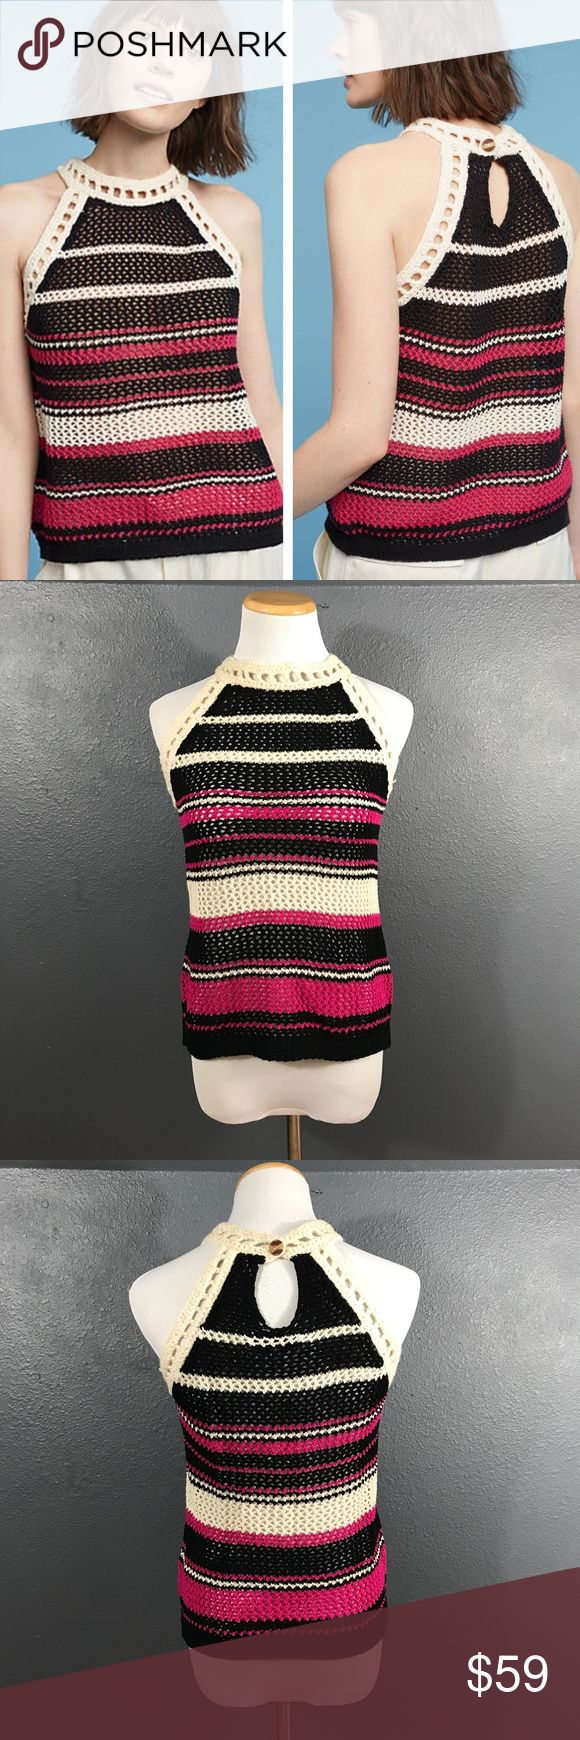 """Anthropologie Striped Knit Tank Top Anthropologie Ravella Striped Knit Tank Top by John + Jean. Crochet knit top. Sleeveless. Burron closure on nape. Cool layered over a long sleeve tee or layer with your favorite jacket or cardigan. Cotton, acrylic, nylon blend. Crea/white, pink, and black. New with tags.  Size XS. A14  Underarm to underarm 17"""" Length 22"""" Anthropologie Tops Tank Tops"""